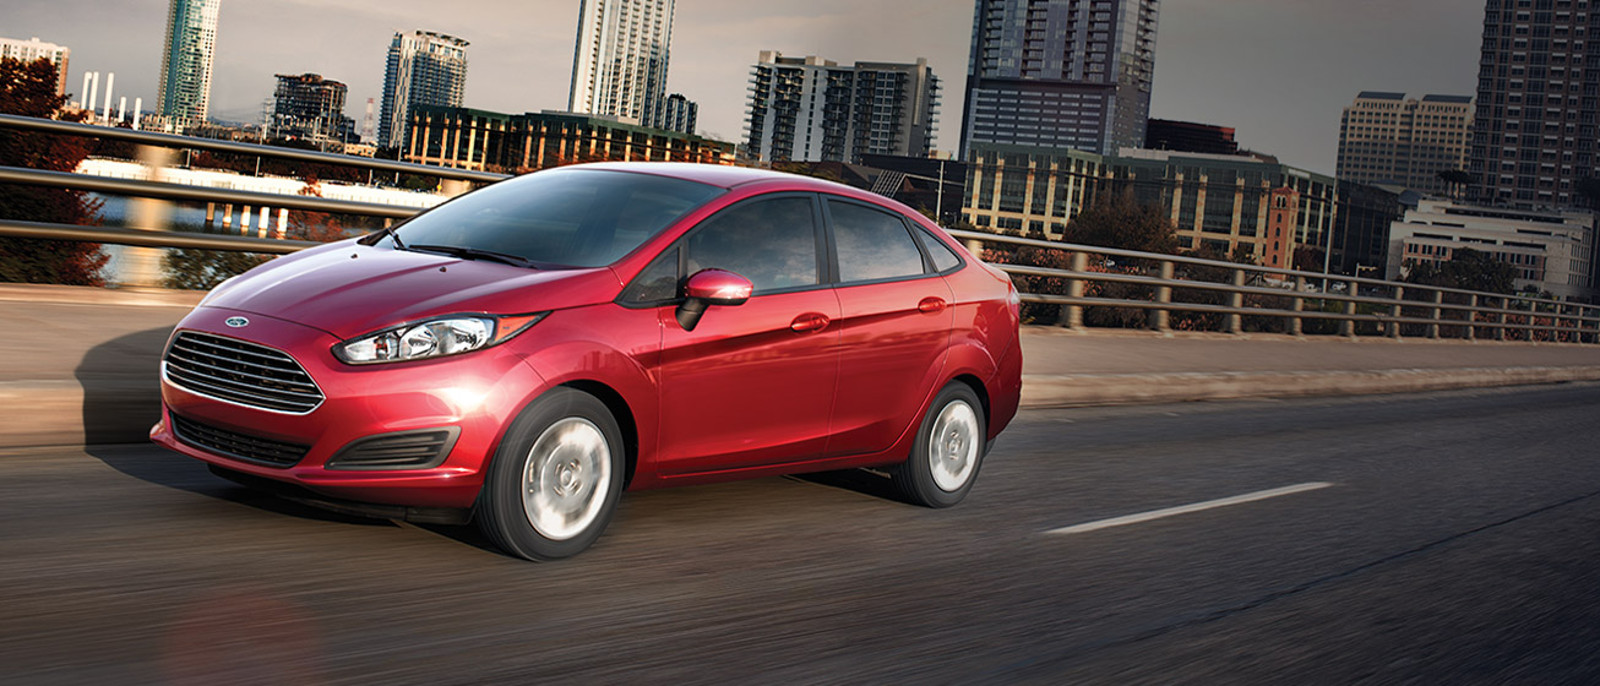 2015 ford fiesta on road